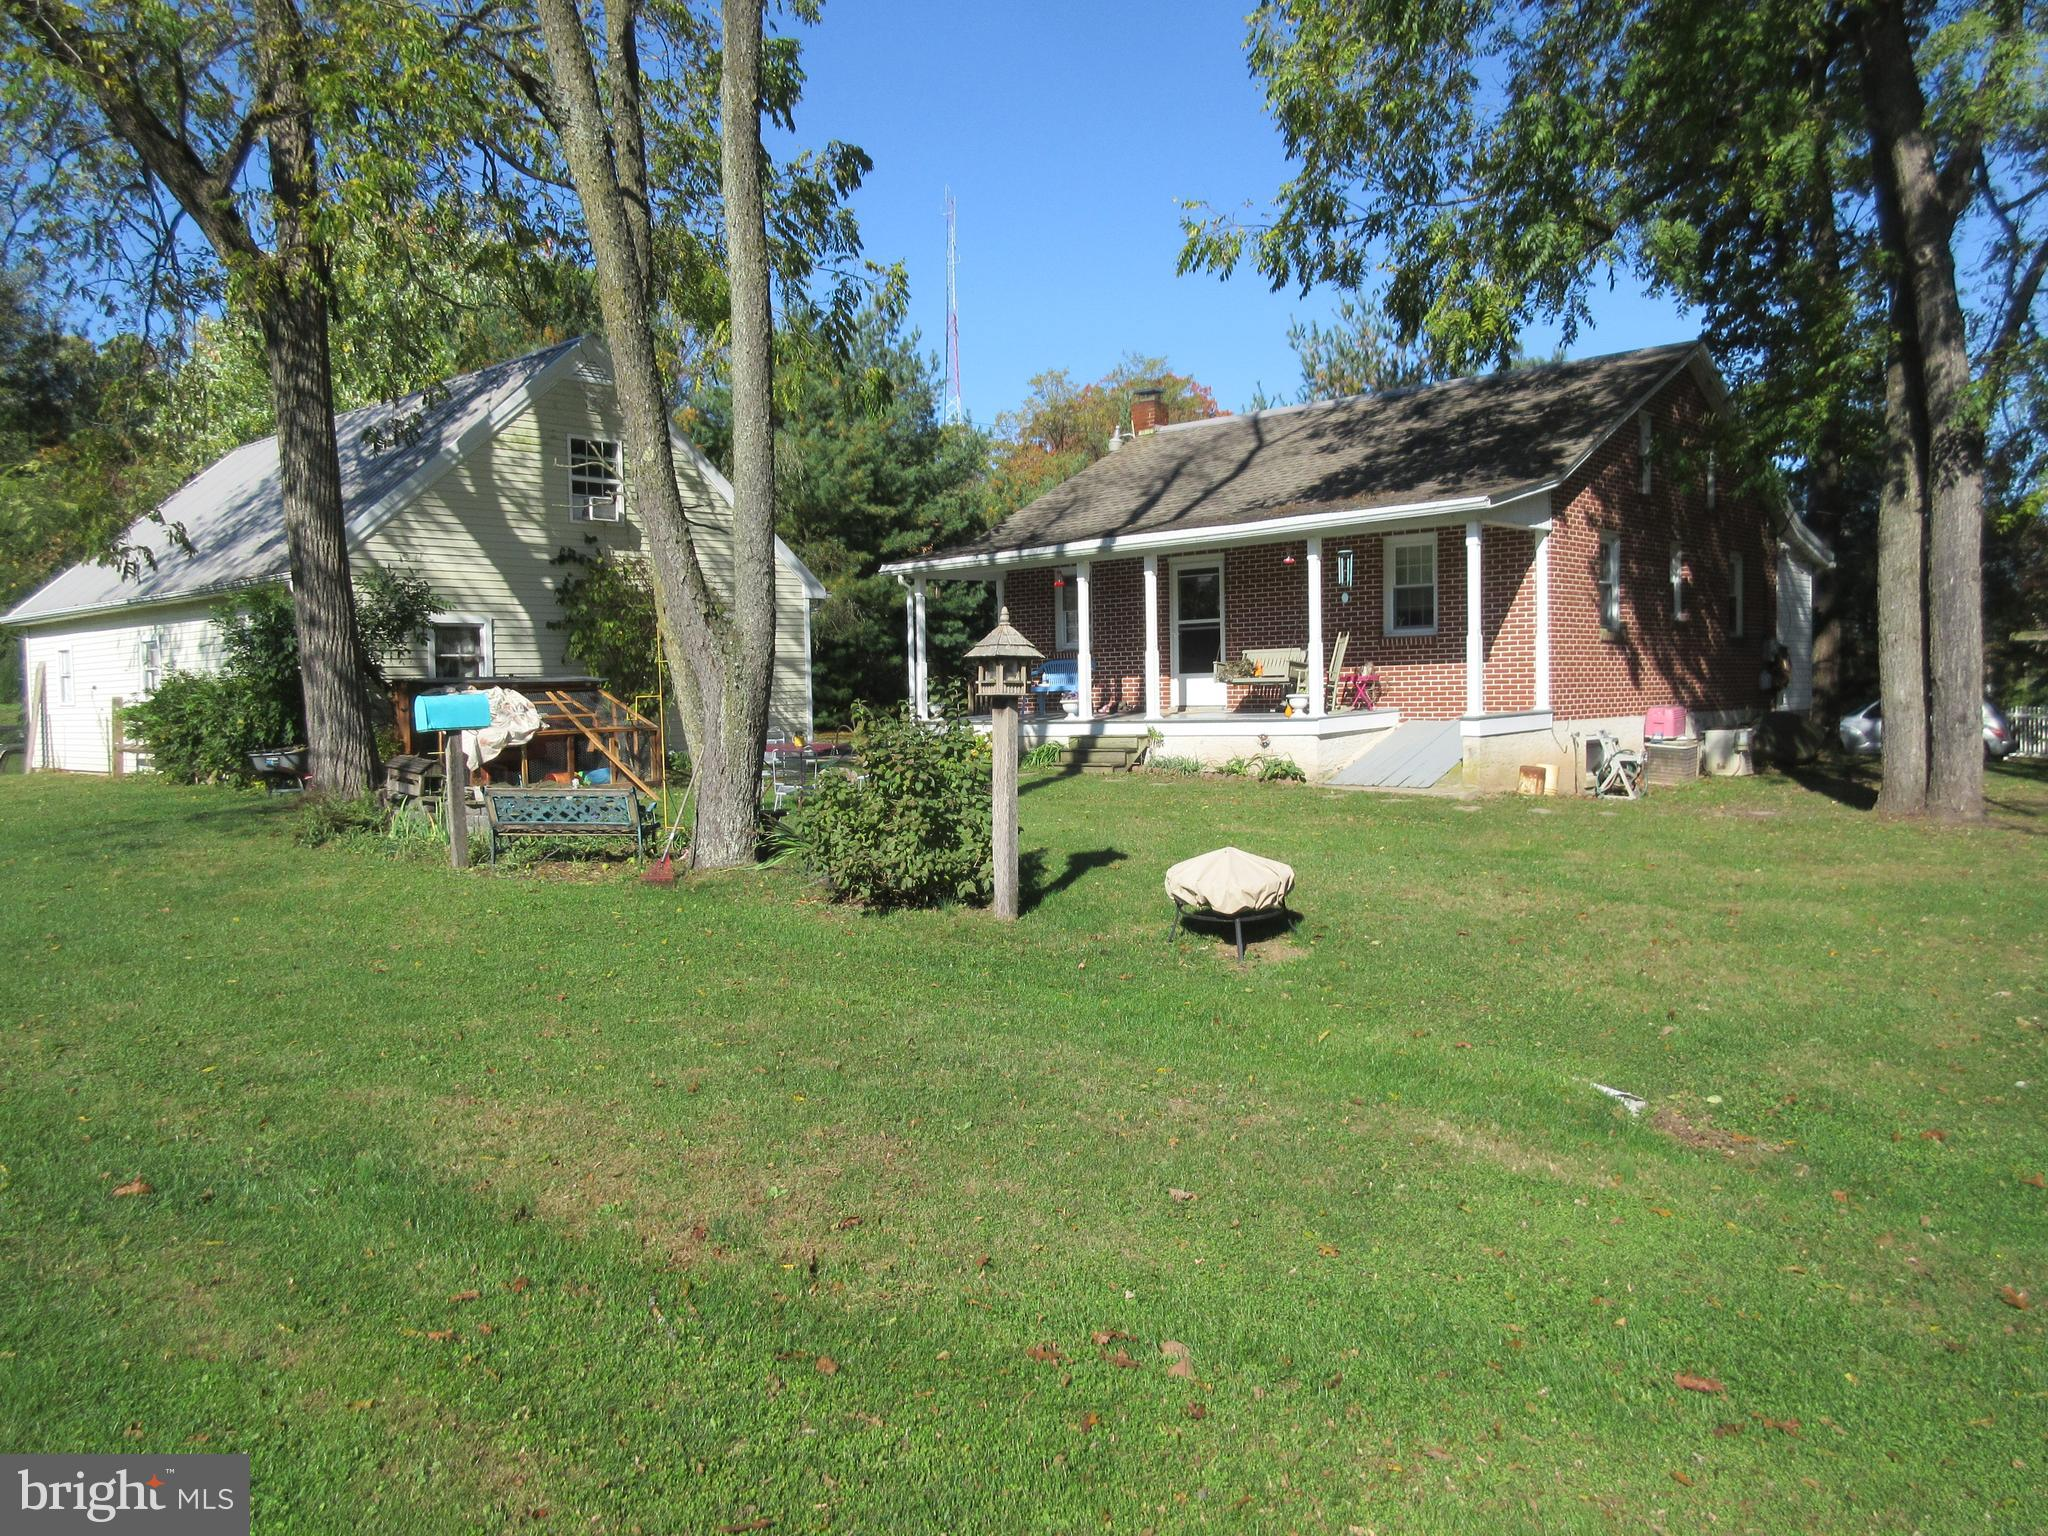 441 SHEEP HILL ROAD, NEWMANSTOWN, PA 17073